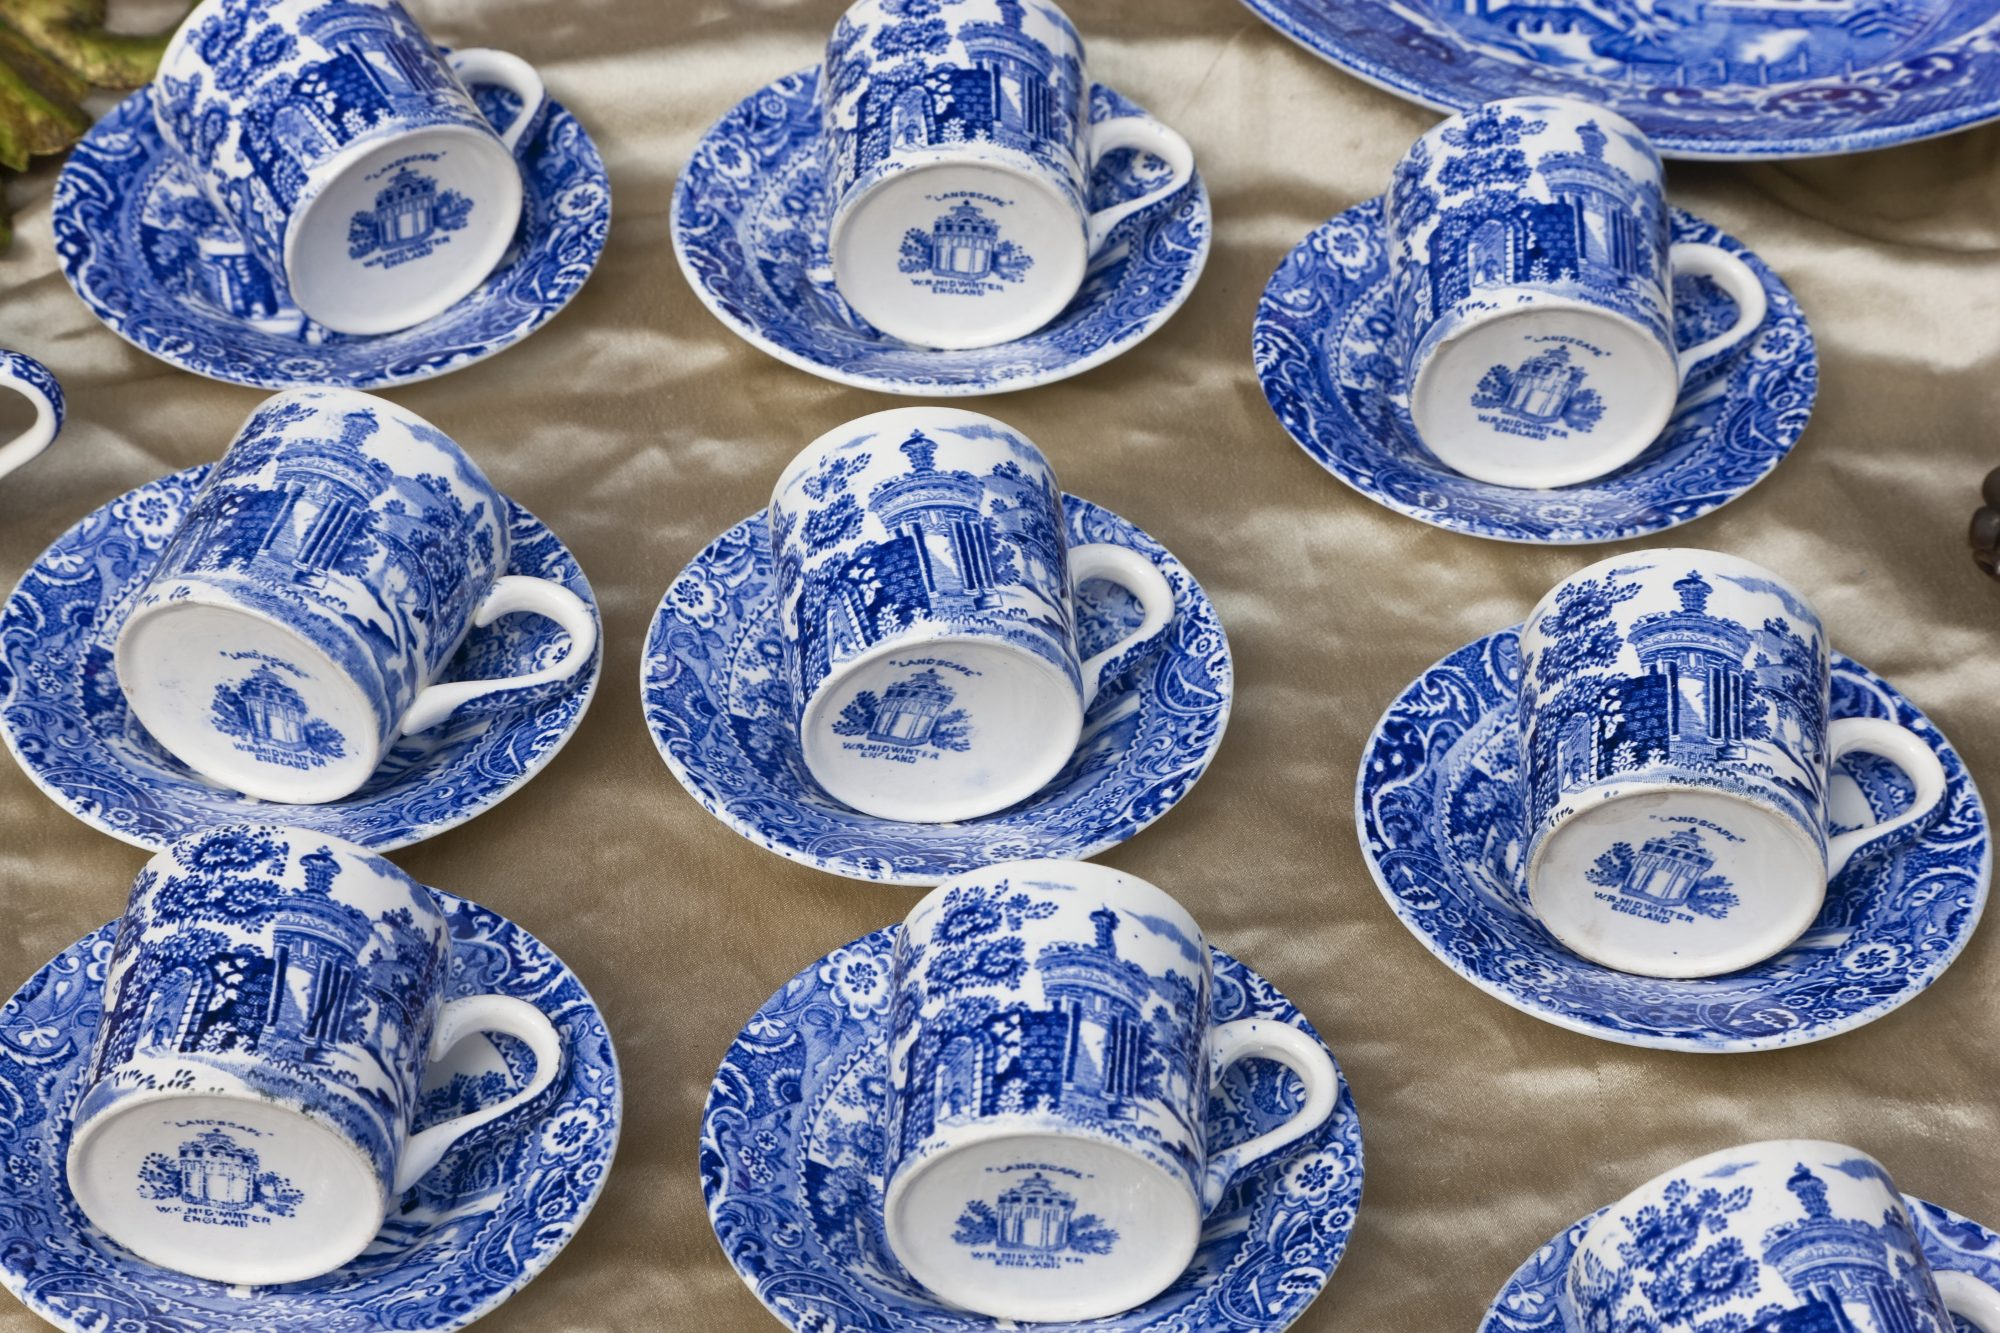 antique blue and white tea cups and saucers